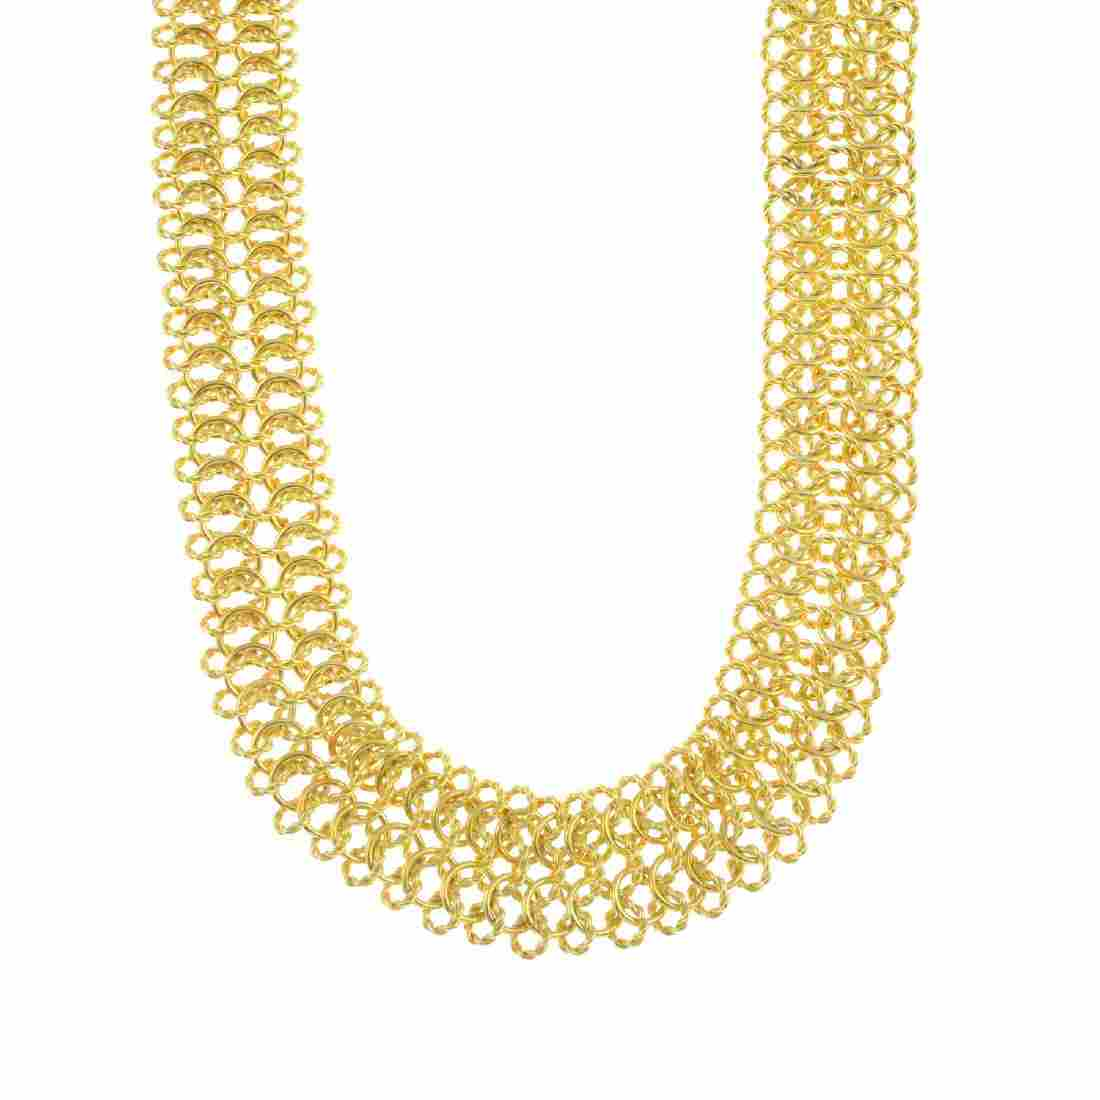 DAVID YURMAN - a diamond necklace. The fancy-link chain